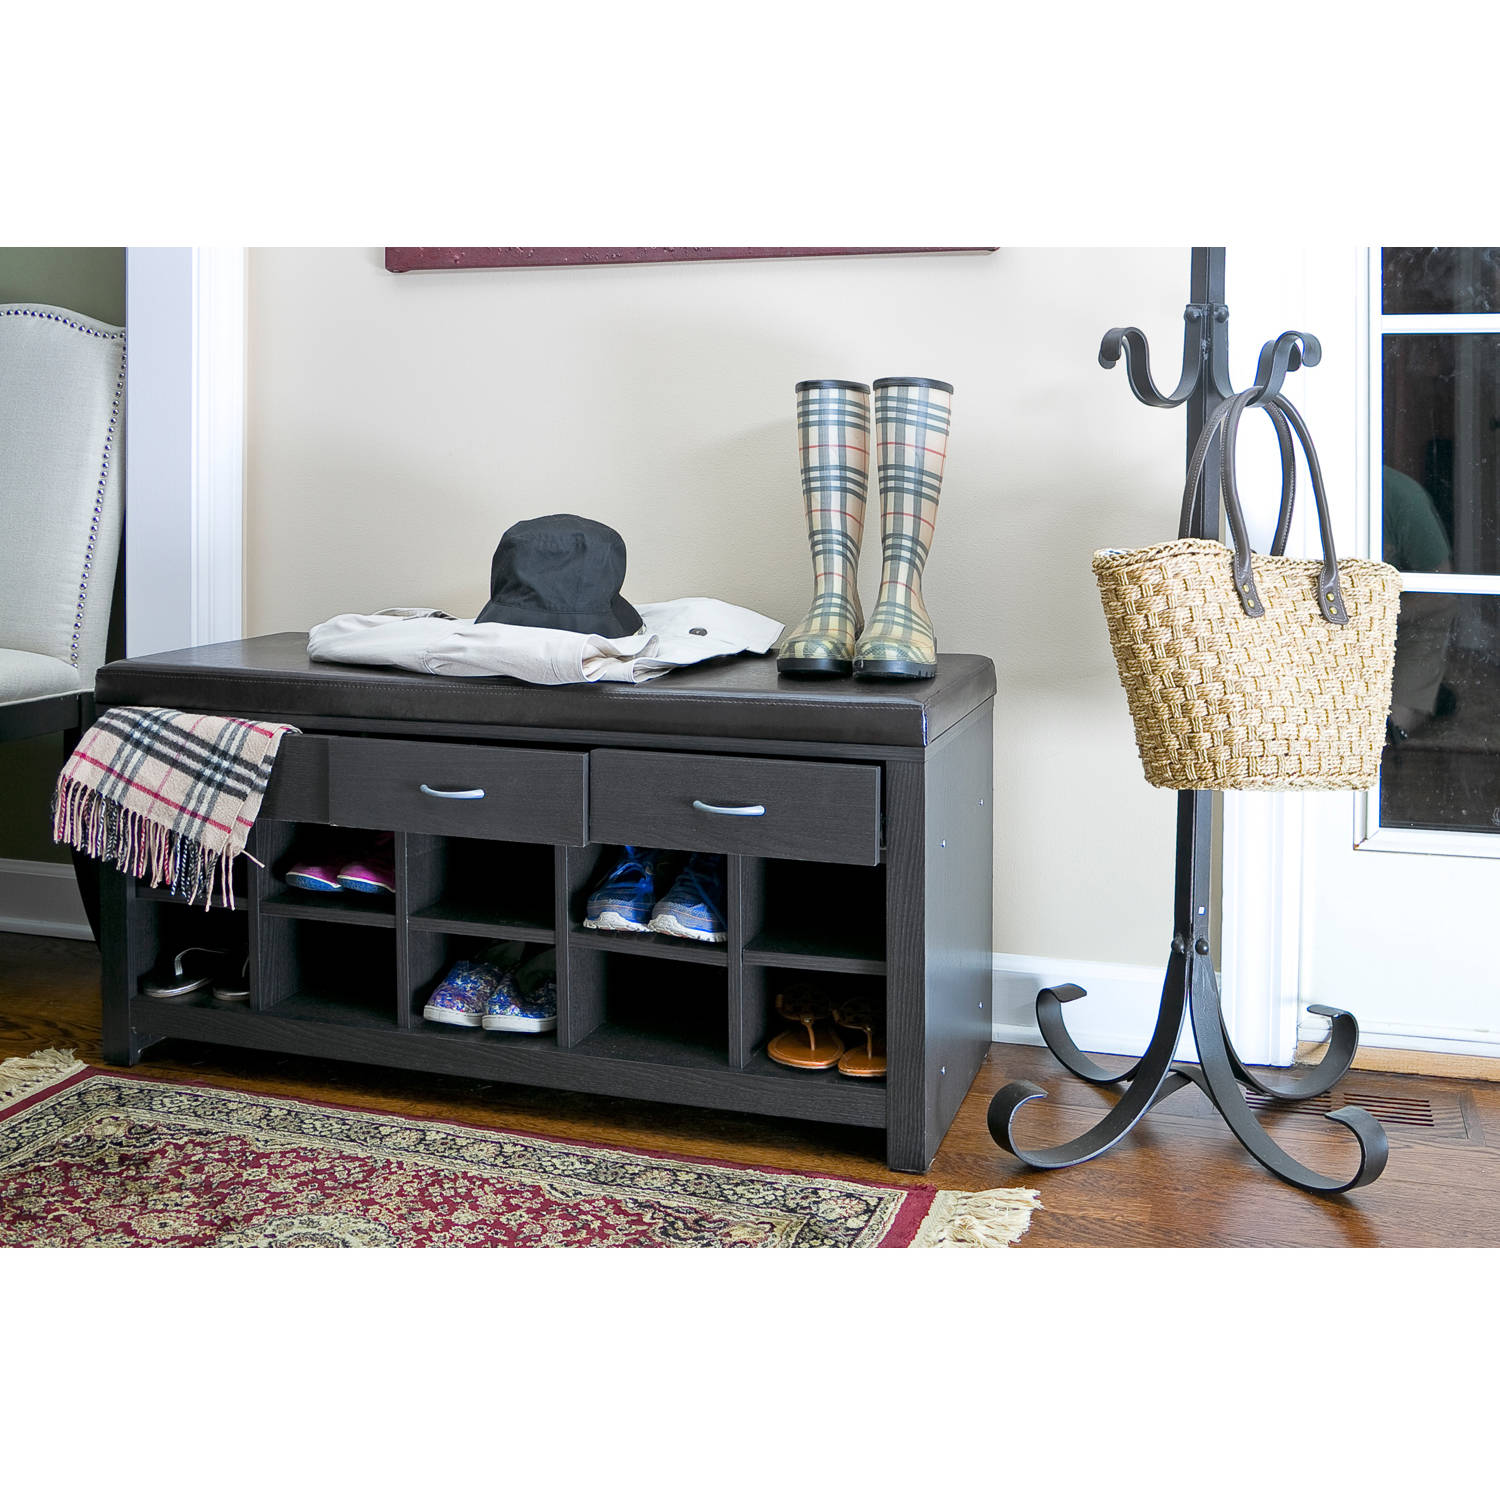 Keystone Entryway Bench with Shoe Storage, Teak - Walmart.com | title